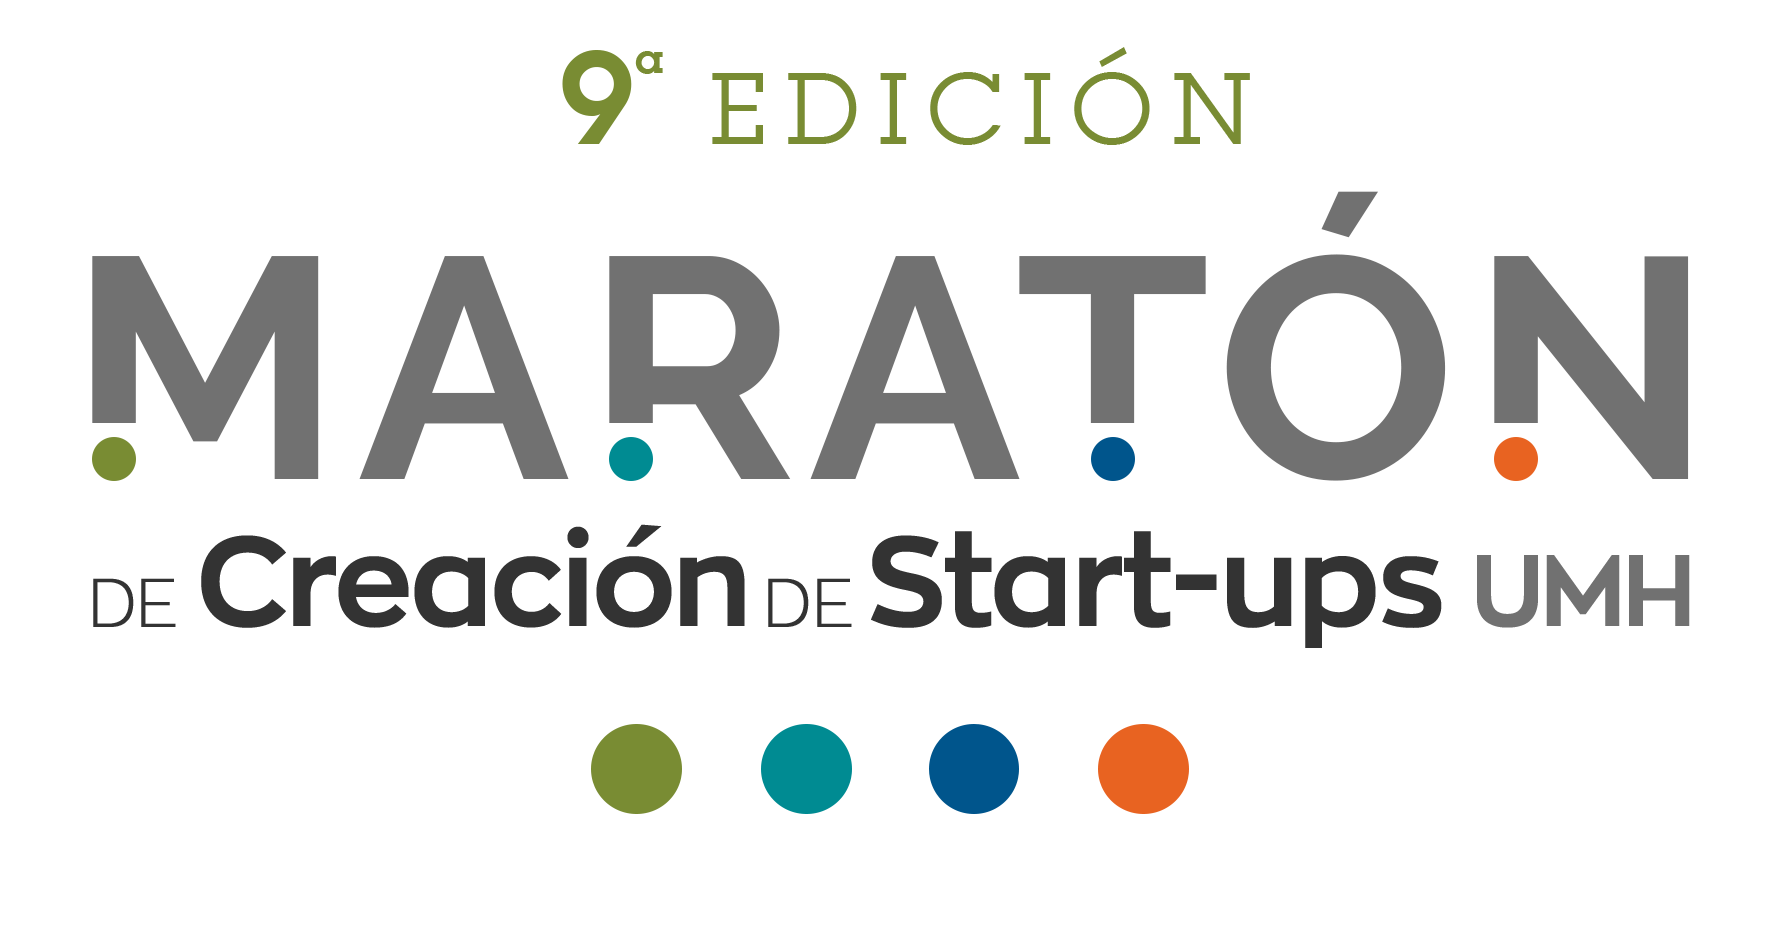 MARATÓN START-UPS UMH